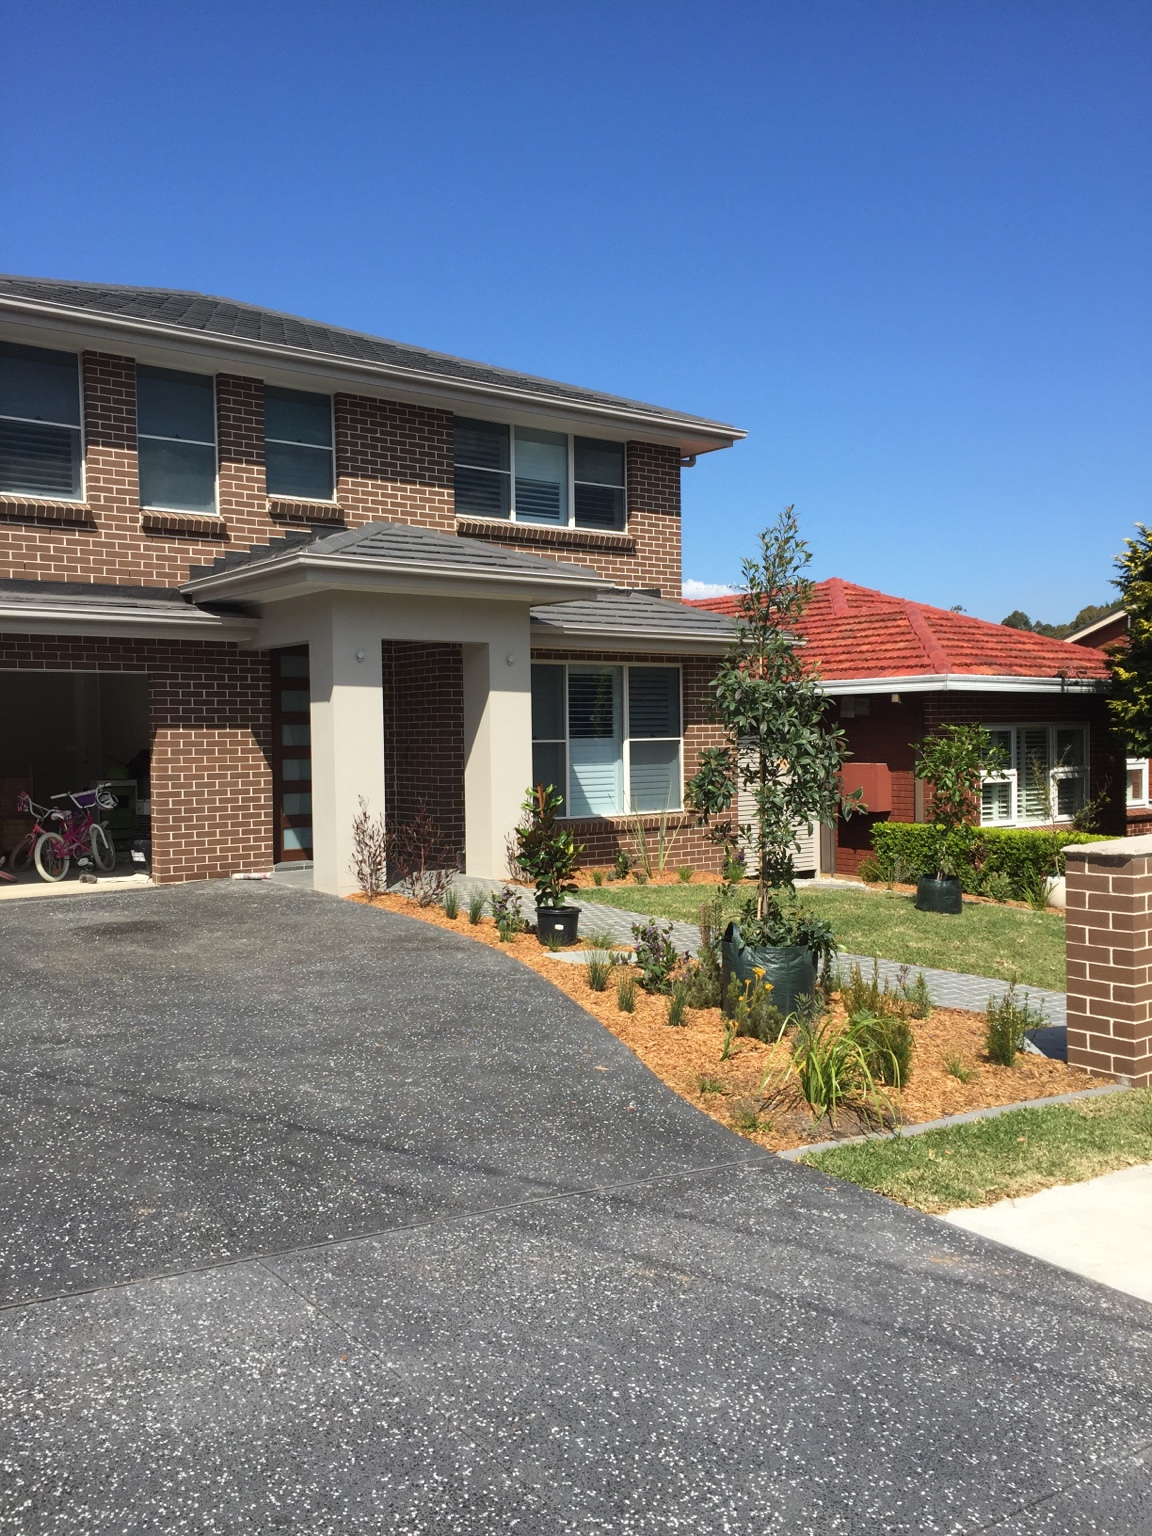 View topic - Custom home design Sydney - narrow block: WE ARE IN ...